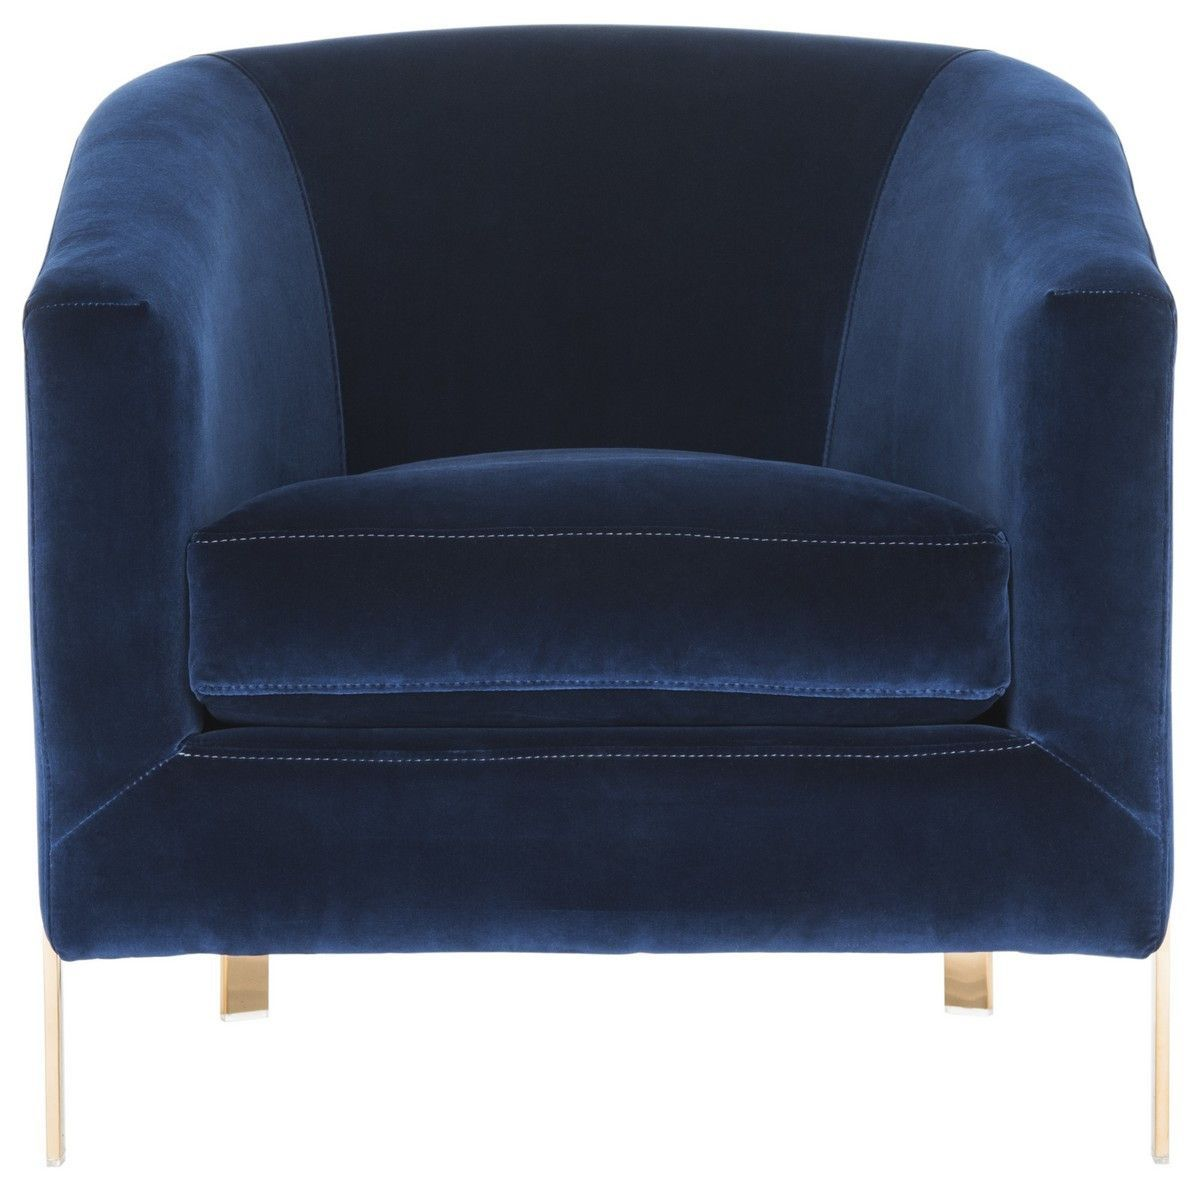 Attractive Vernon Velvet Club Chair In Giotto Navy Design By Safavieh